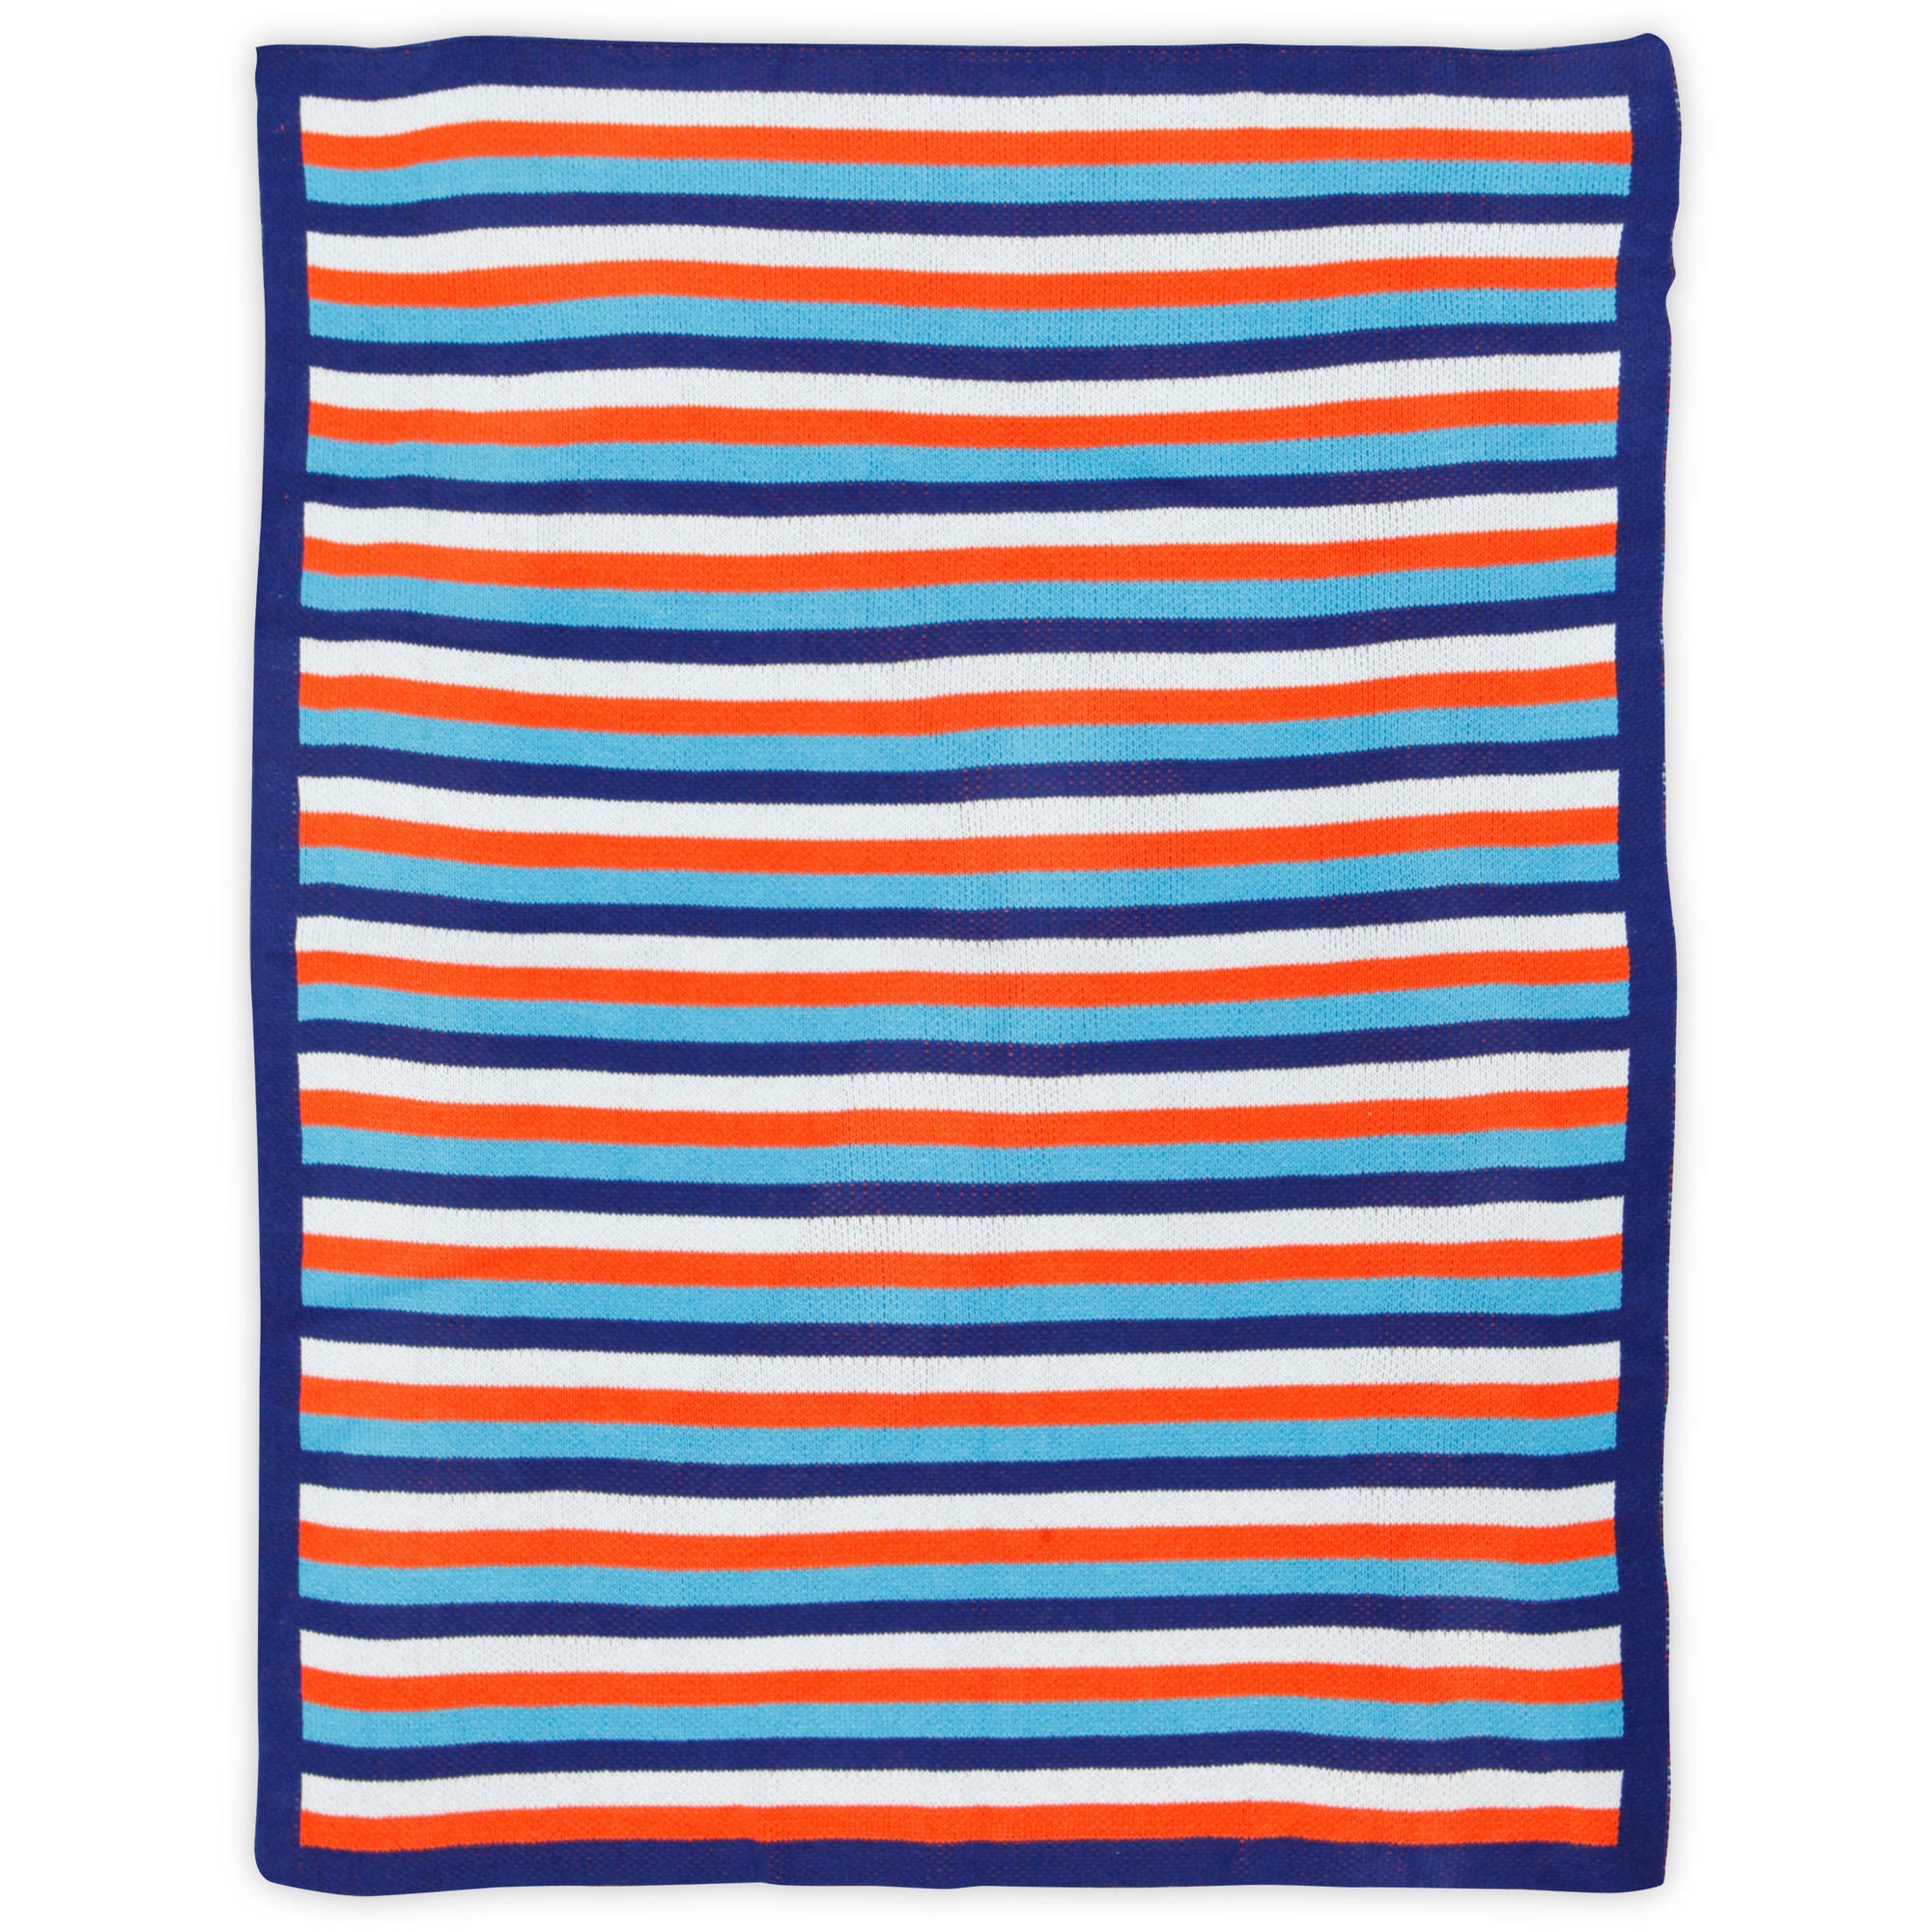 Bananafish Studio Anchors Away Stripe Knit Blanket